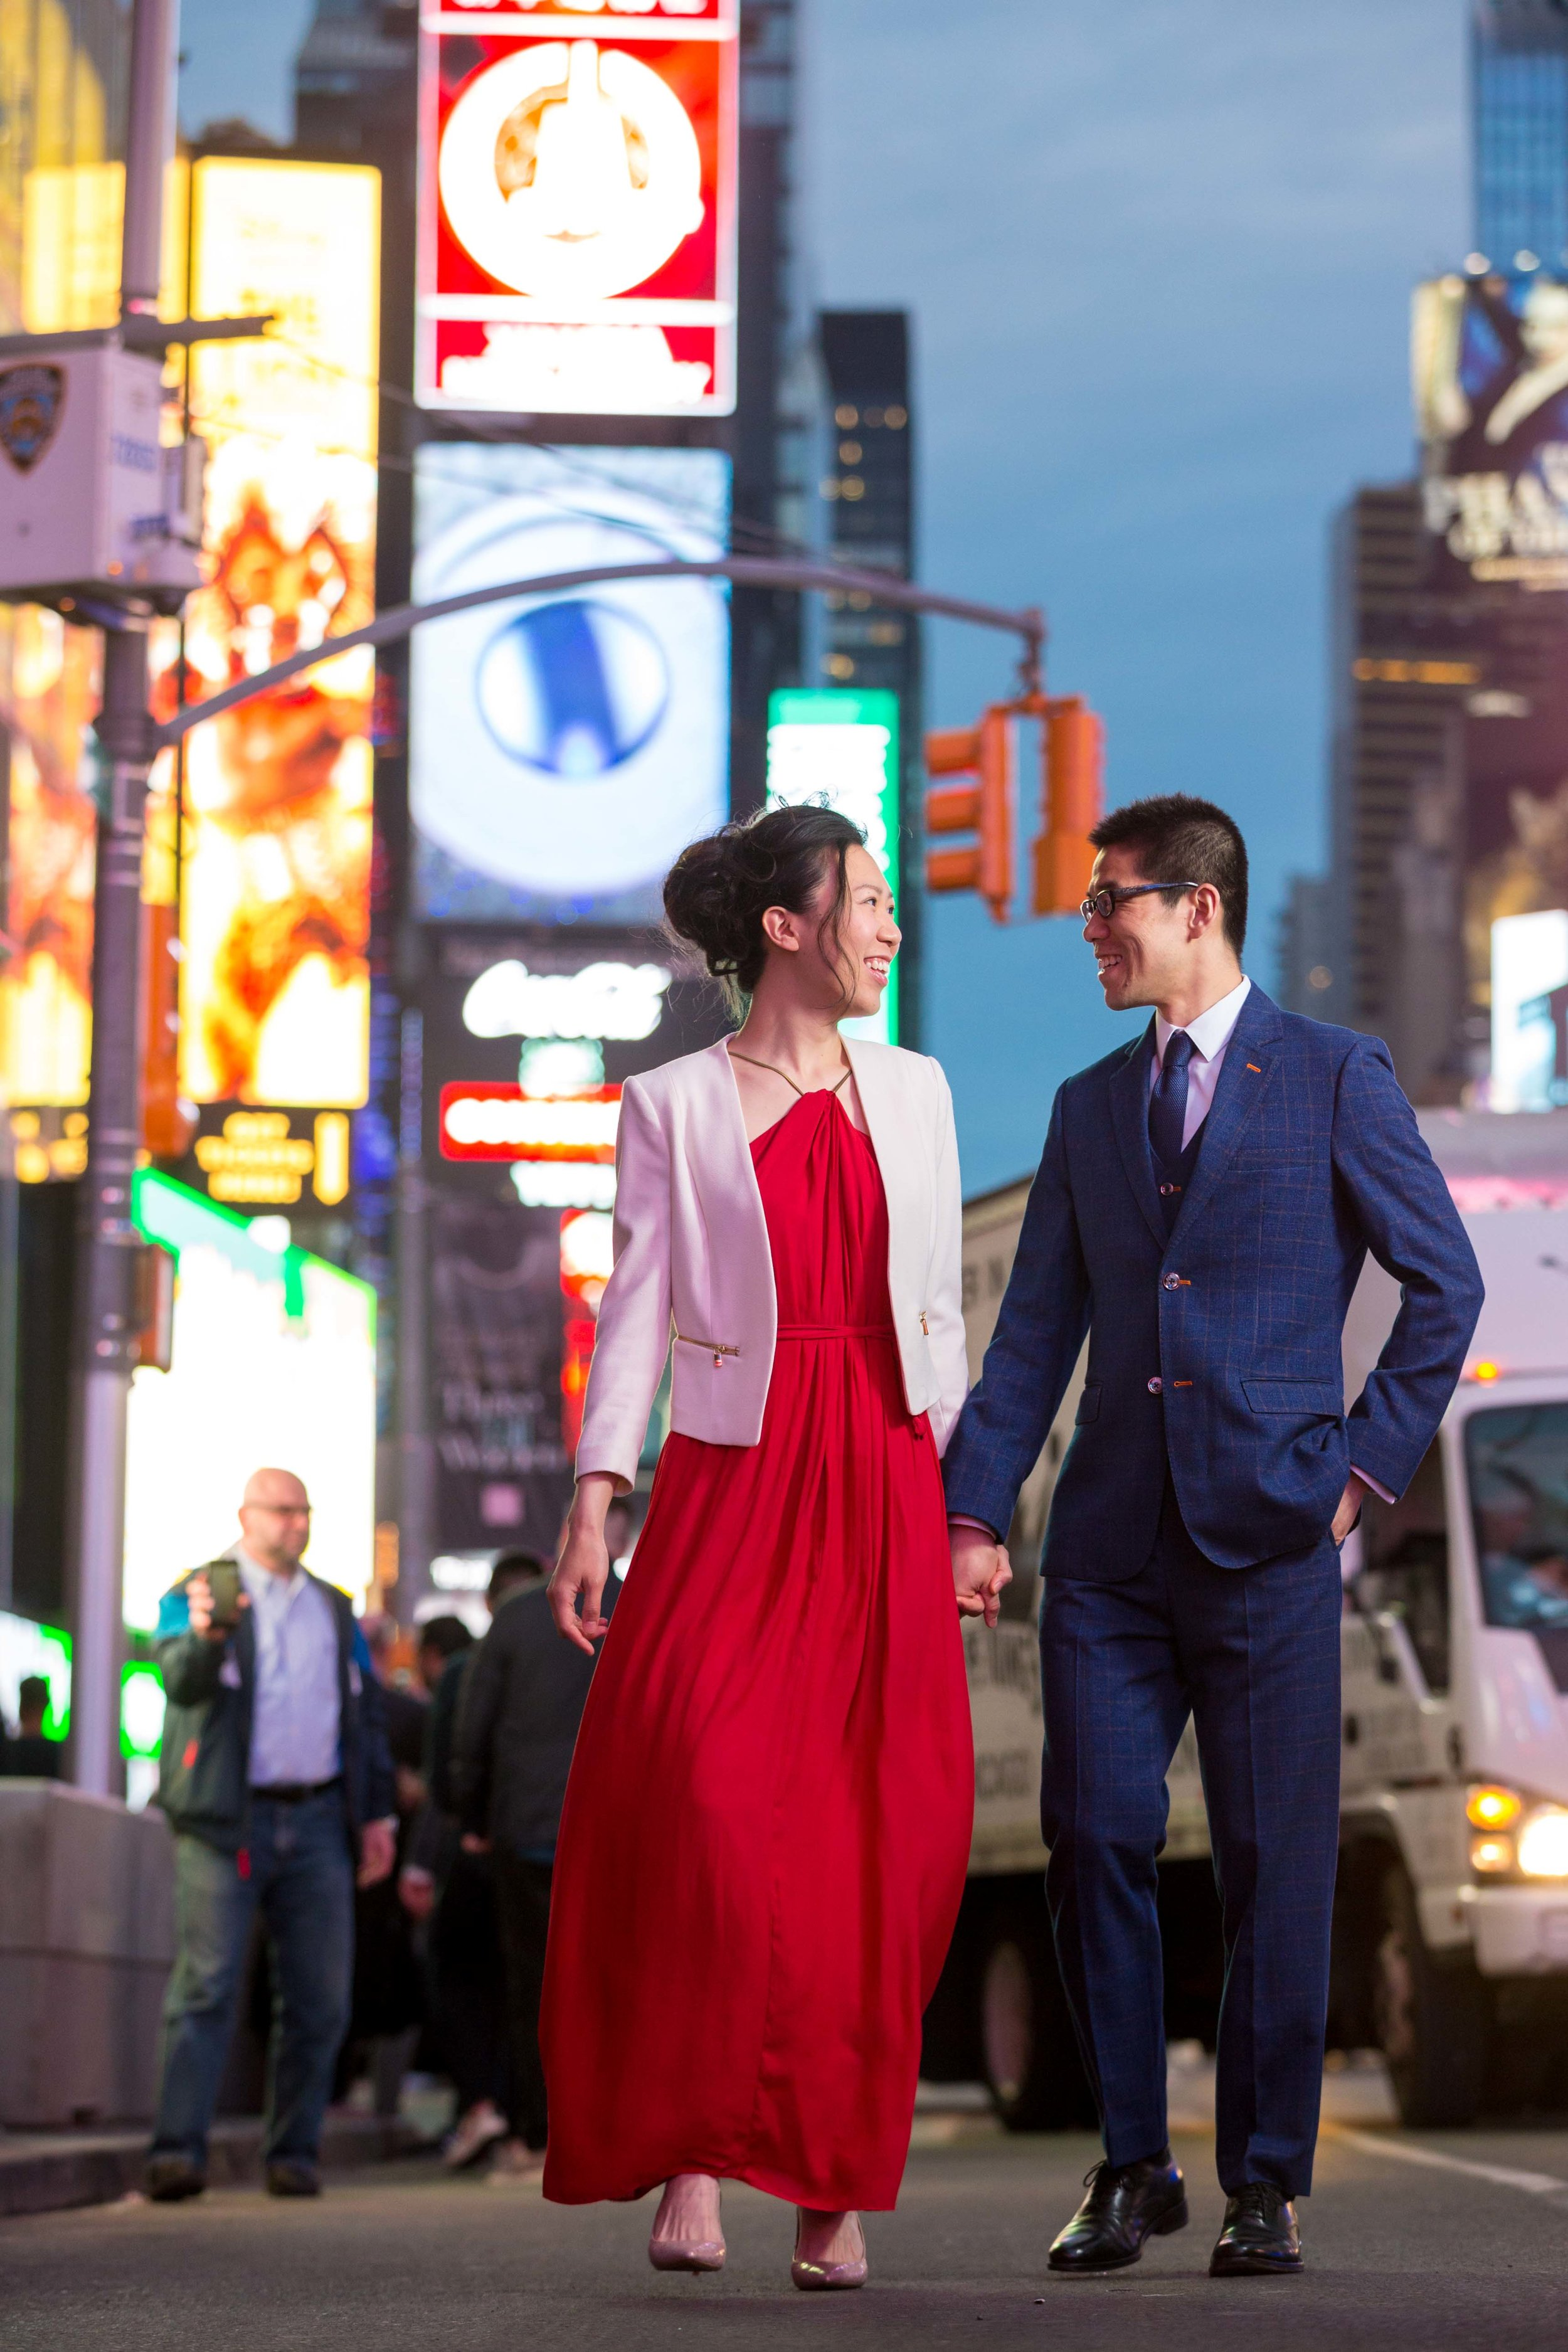 Times Square Engagement Session Photos Shoot NYC Wedding Photographer